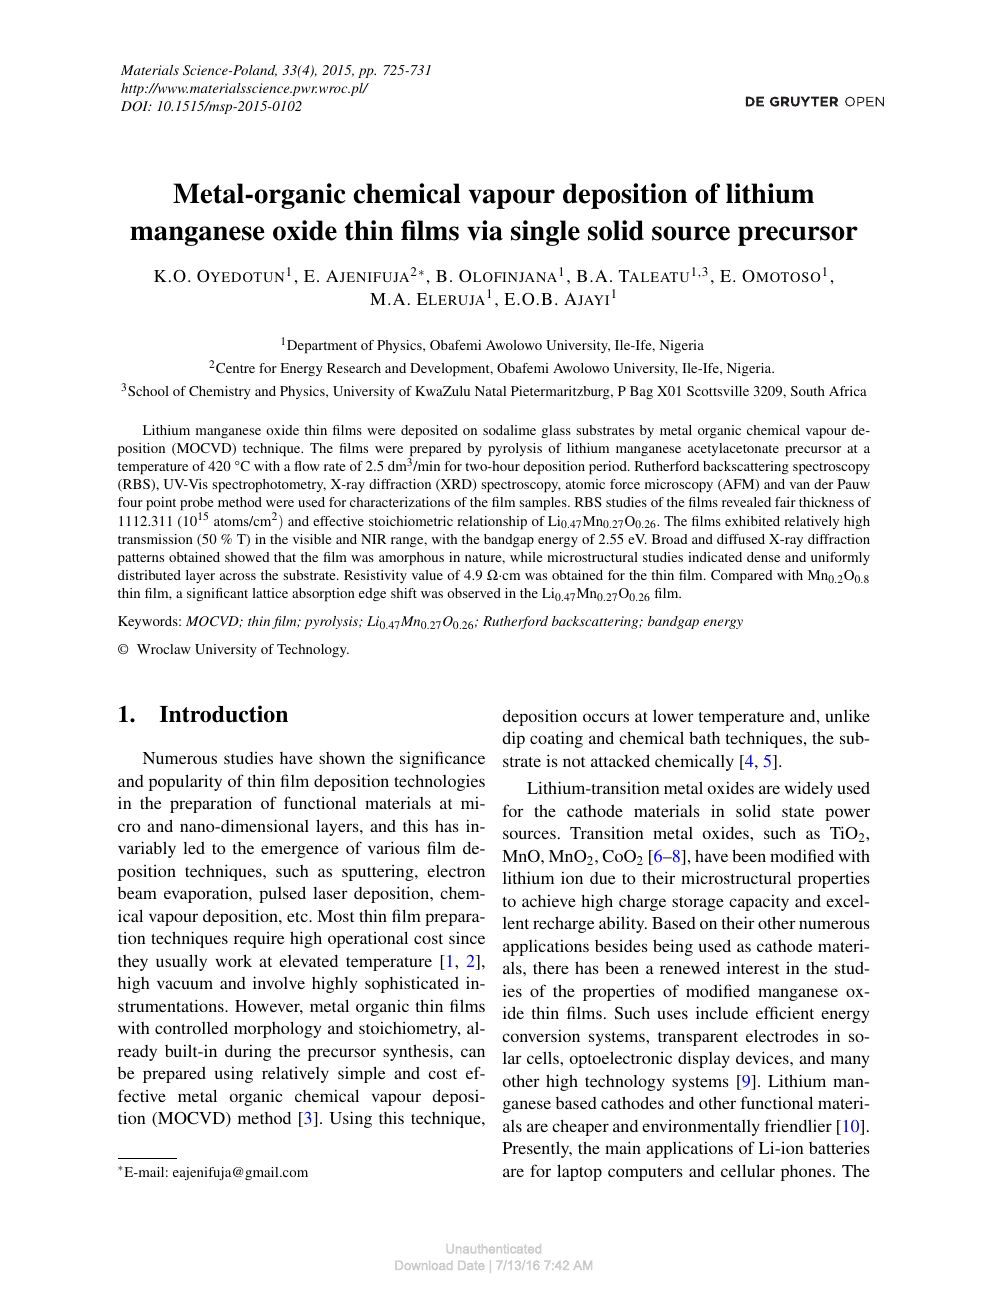 Metal-organic chemical vapour deposition of lithium